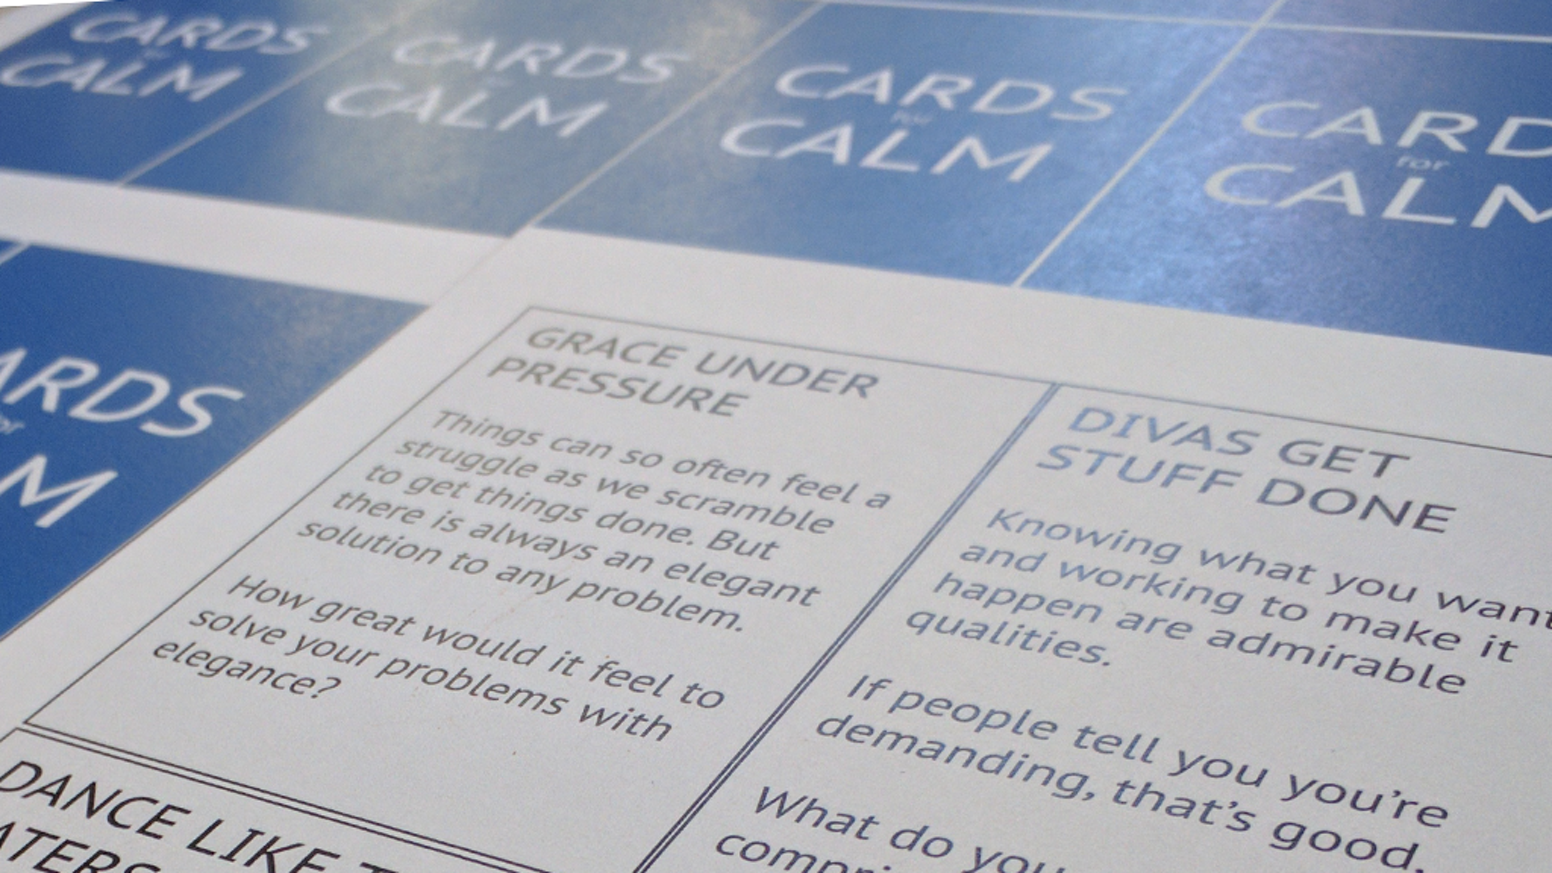 Cards for Calm is a game that helps discourage negative thinking, deal with anxiety and promote mindfulness.